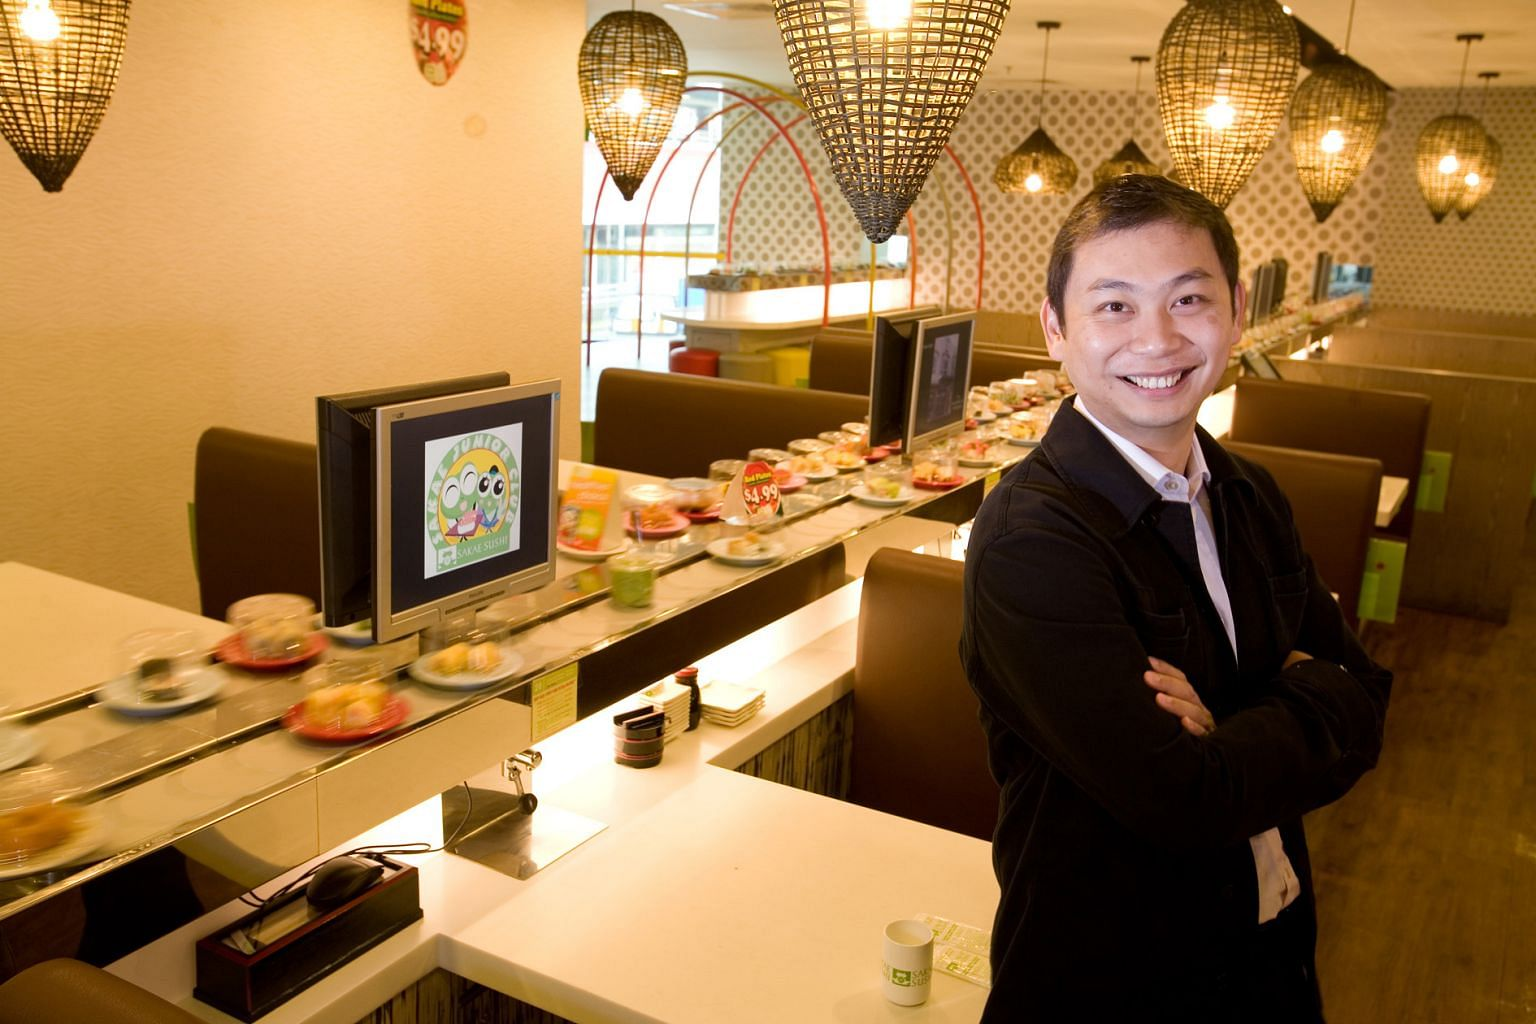 Mr Douglas Foo's vision for Sakae Sushi is a bold one - 30,000 outlets across five continents.